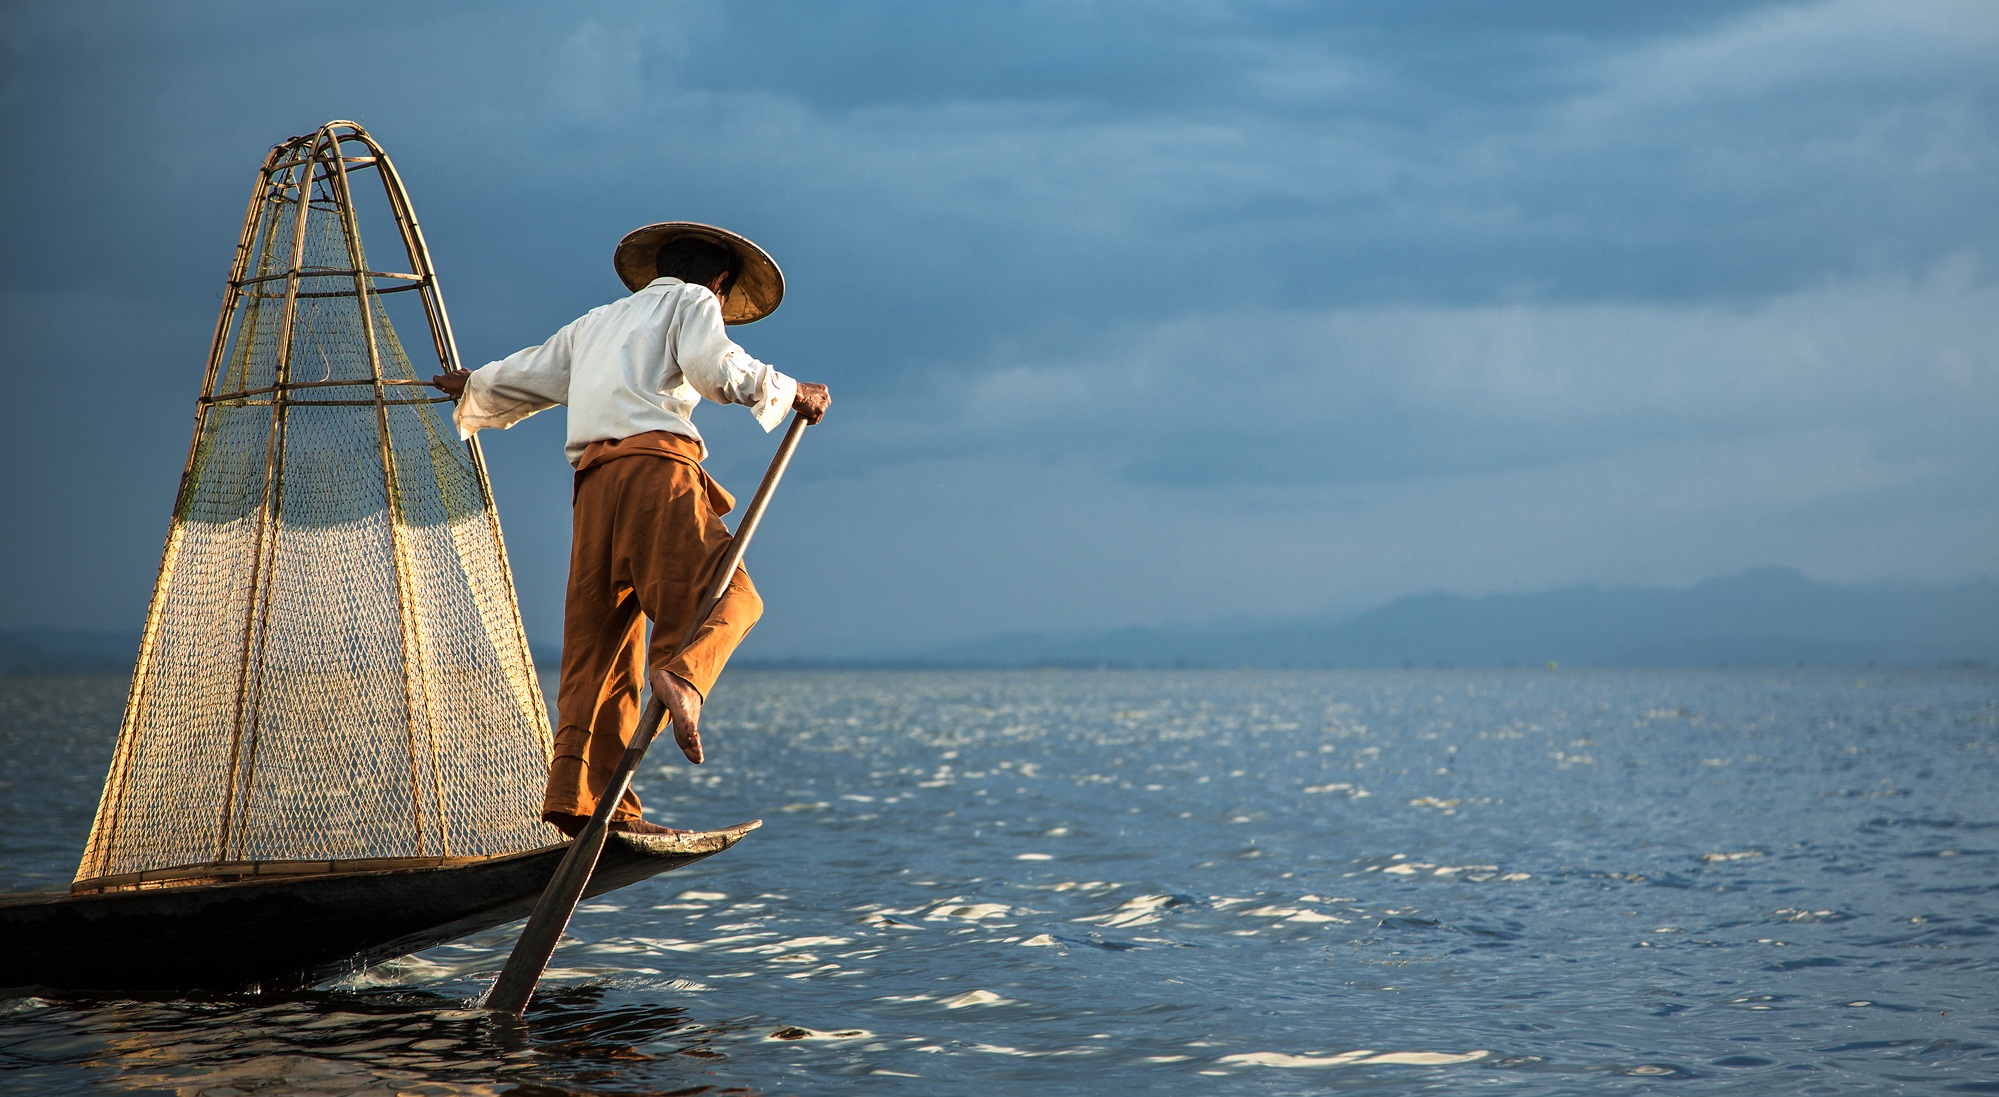 Intha leg rowers have fished this way for generations